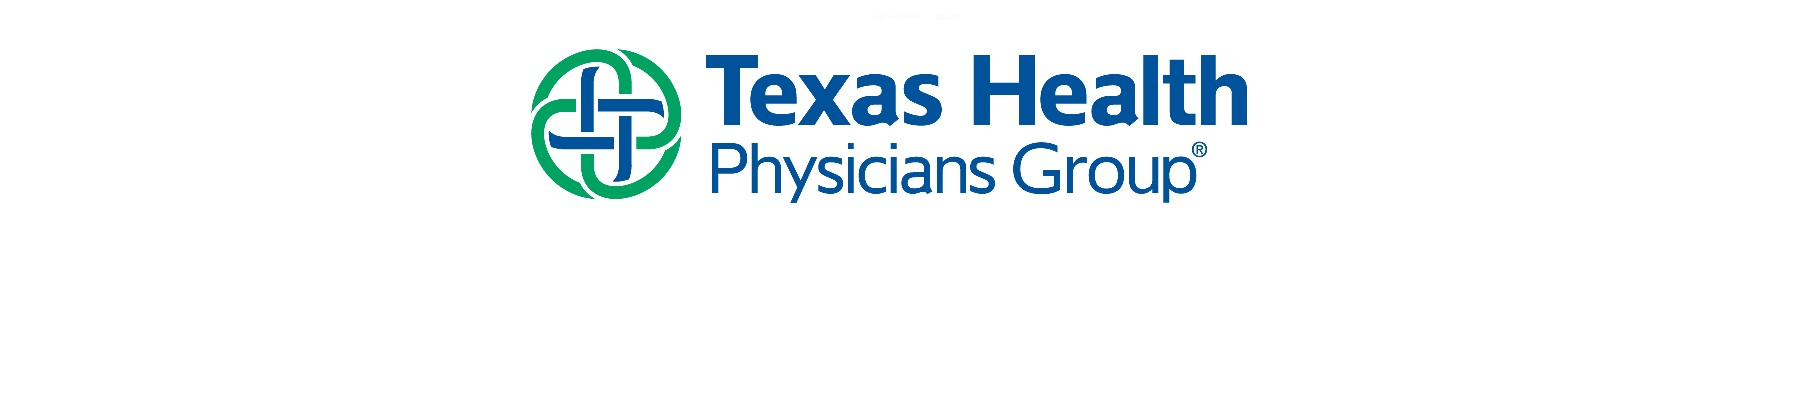 Texas Health Physicians Group Shield